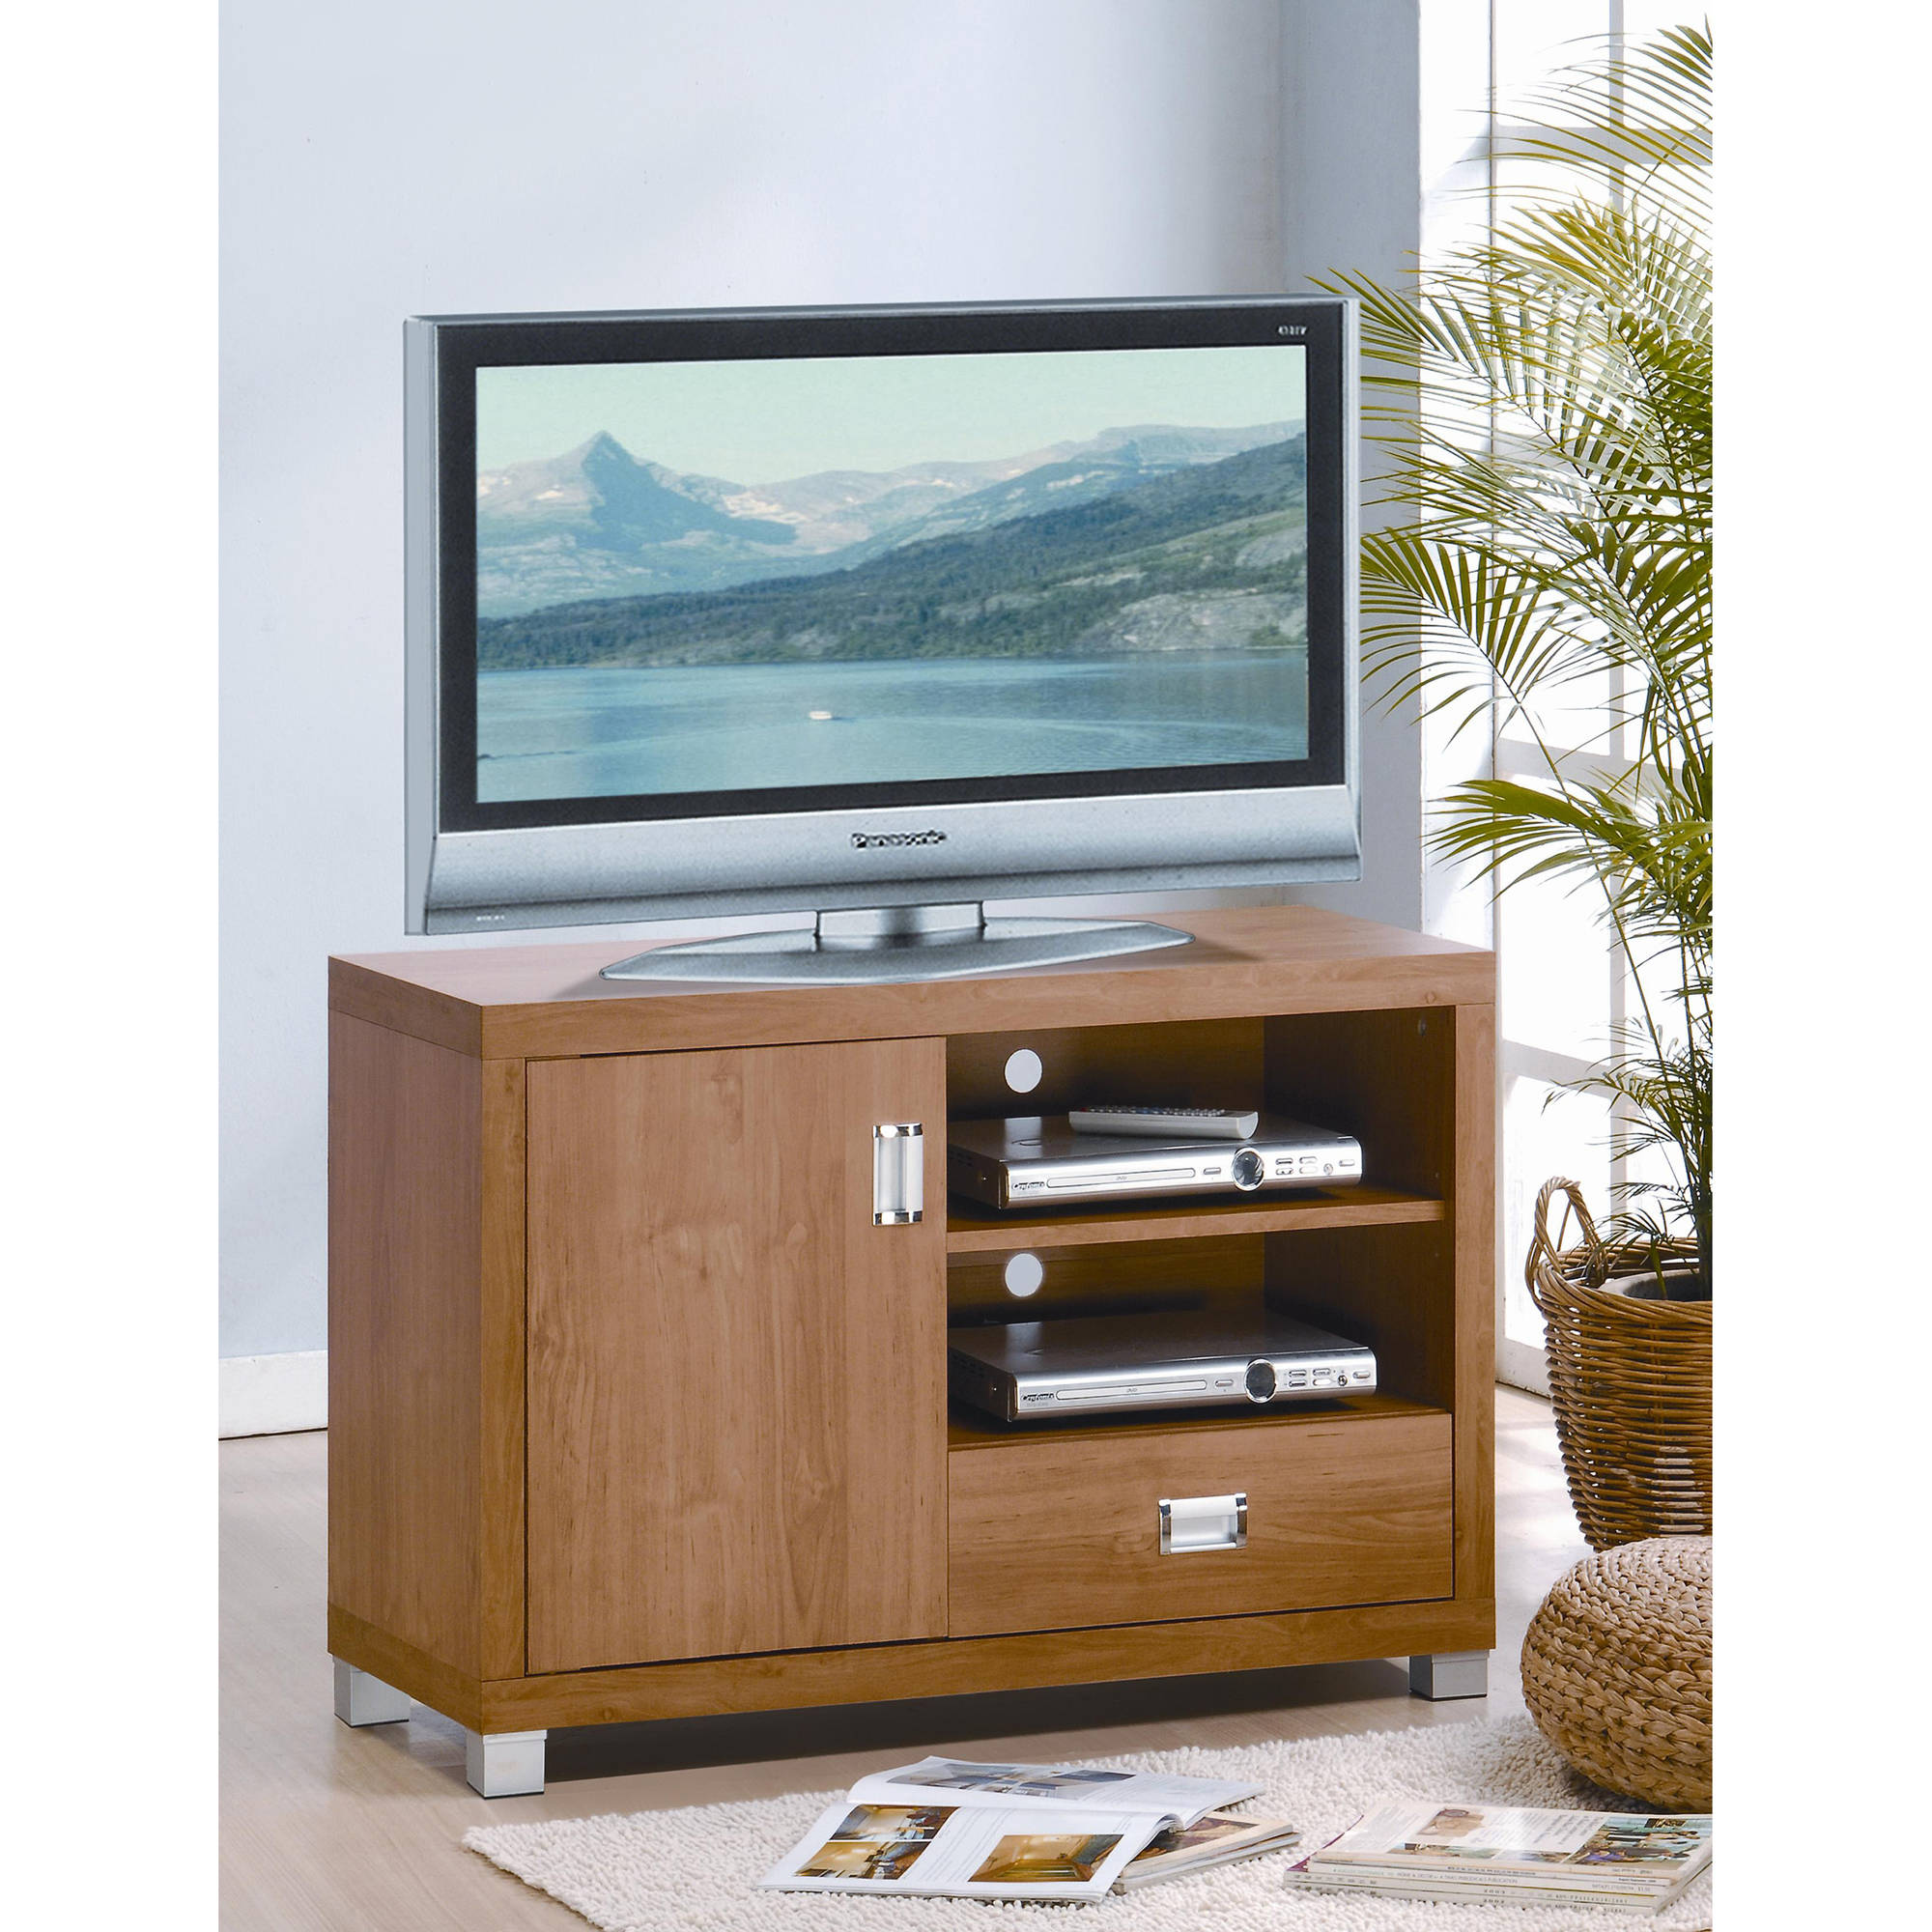 """Techni Mobili TV Stand for TVs Up To 38"""" with Storage, Maple (RTA-8830-MPL)"""